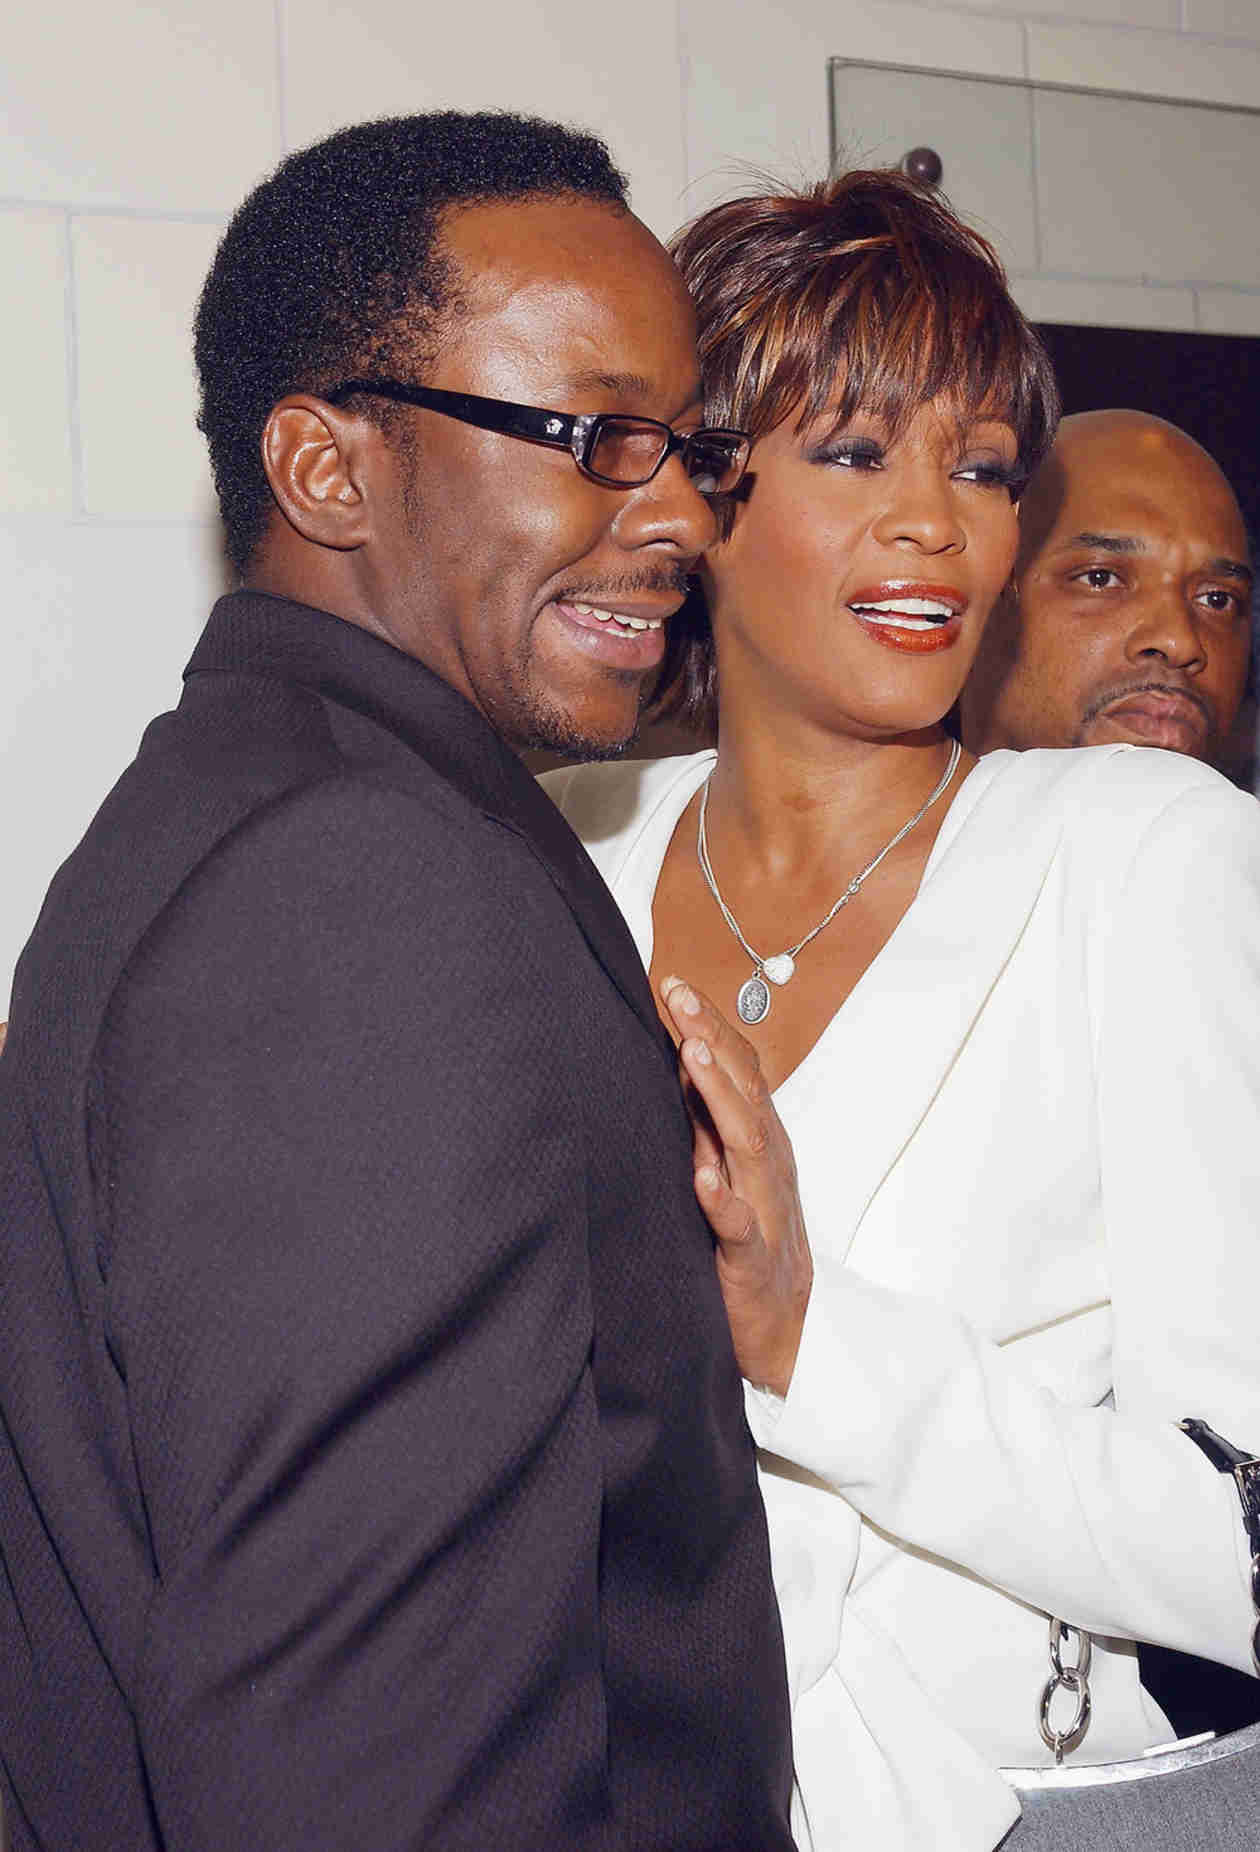 Yaya DaCosta and Arlen Escarpeta as Whitney Houston and Bobby Brown Together! (PHOTO)